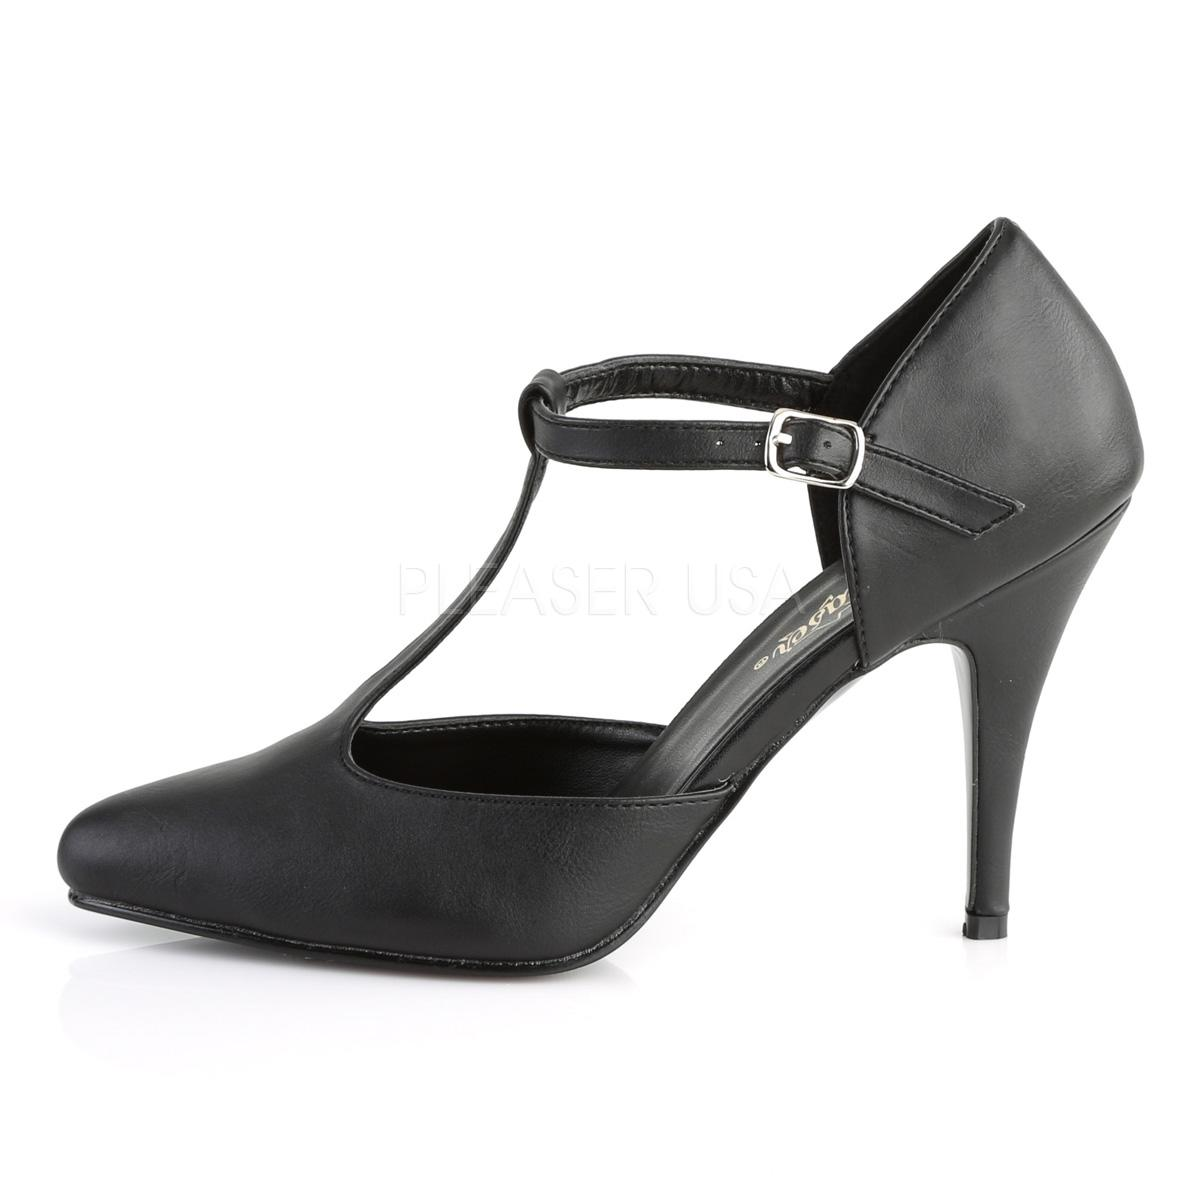 Black Faux Leather D'Orsay style T-strap Pumps